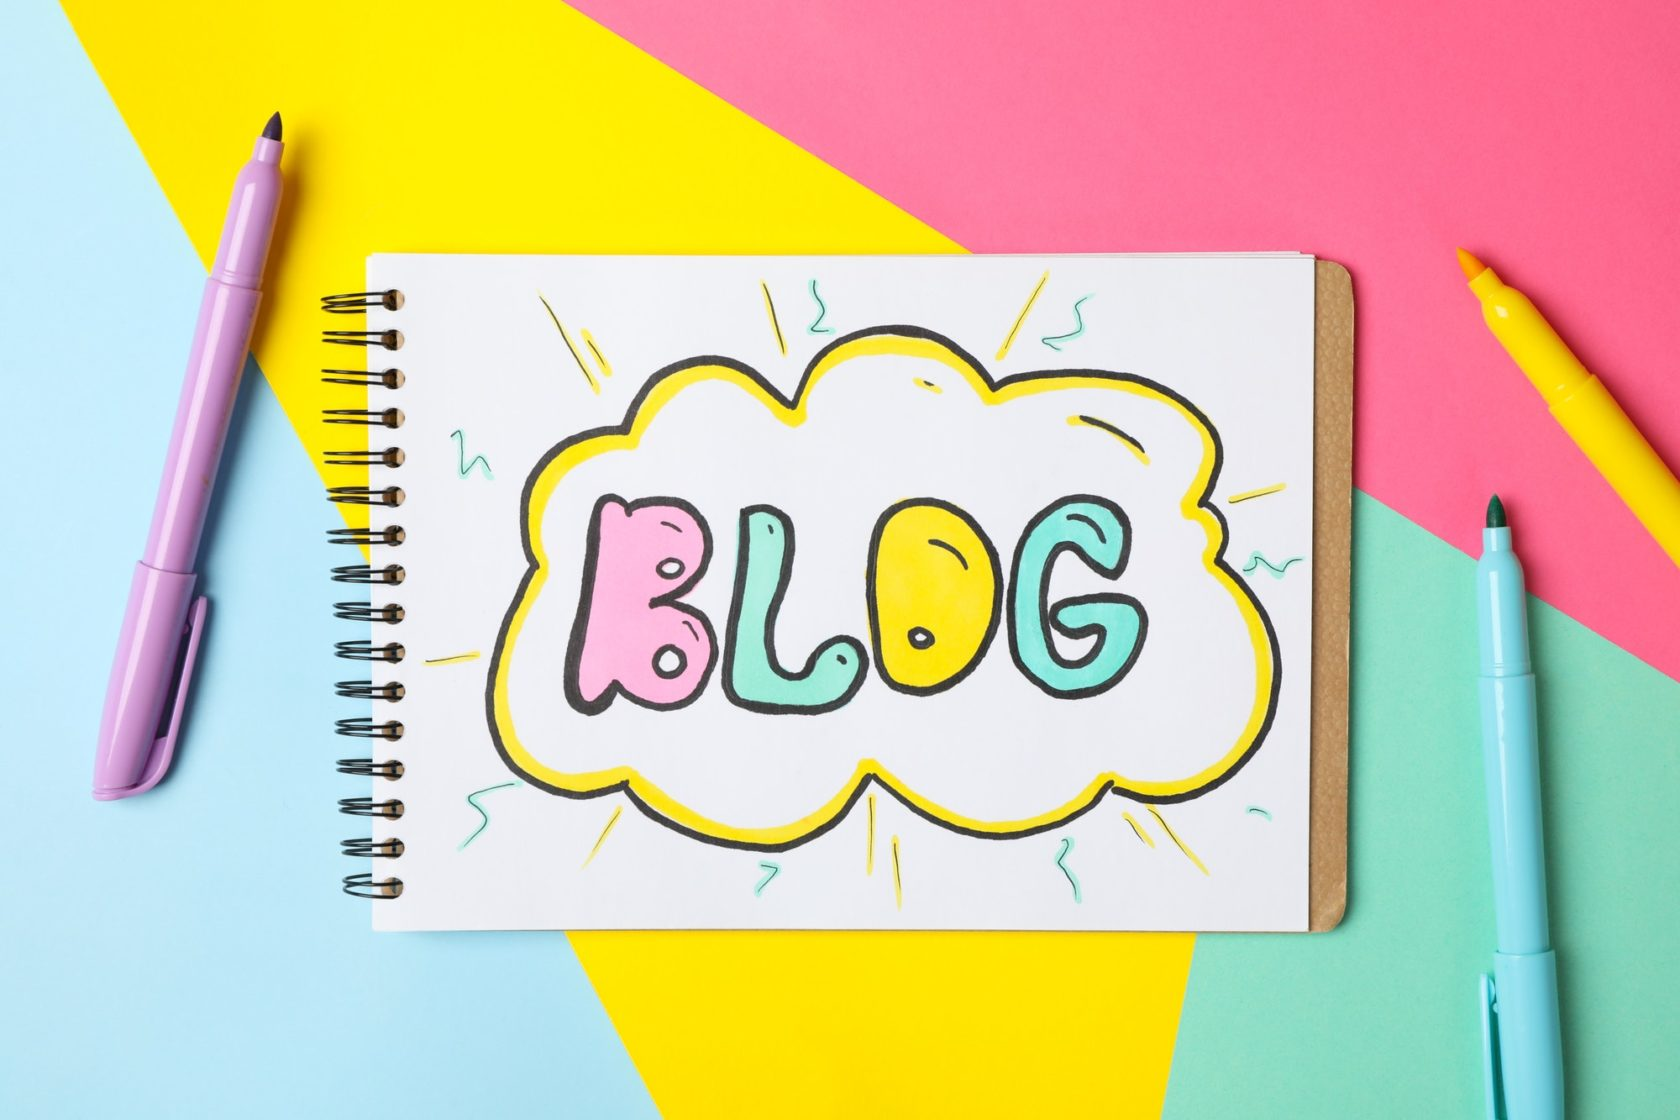 Launch a new blog